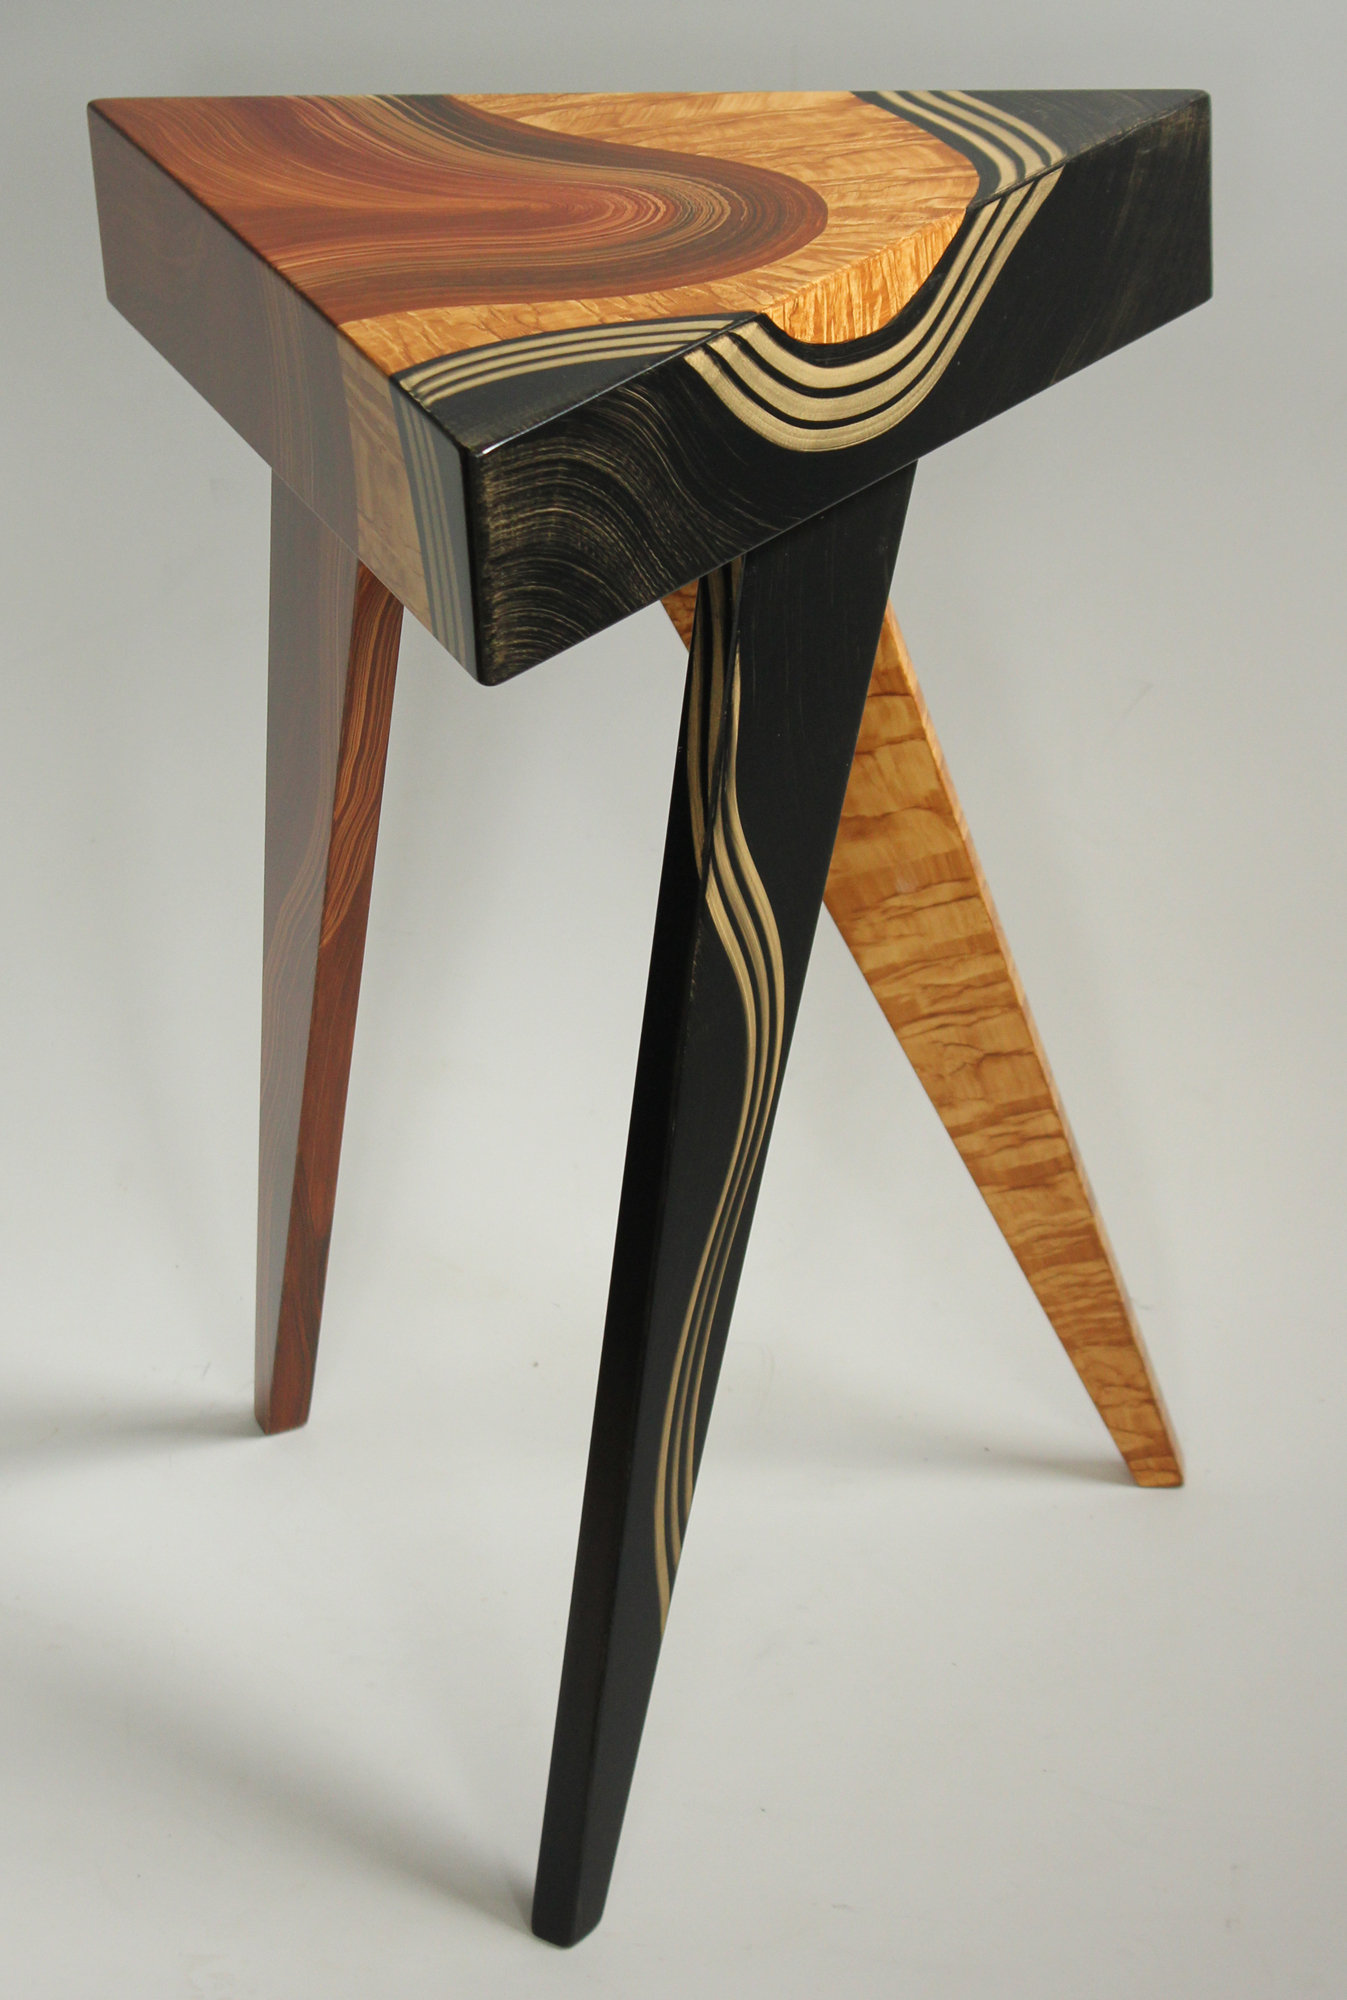 Vienna Triangle Table By Ingela Noren And Daniel Grant